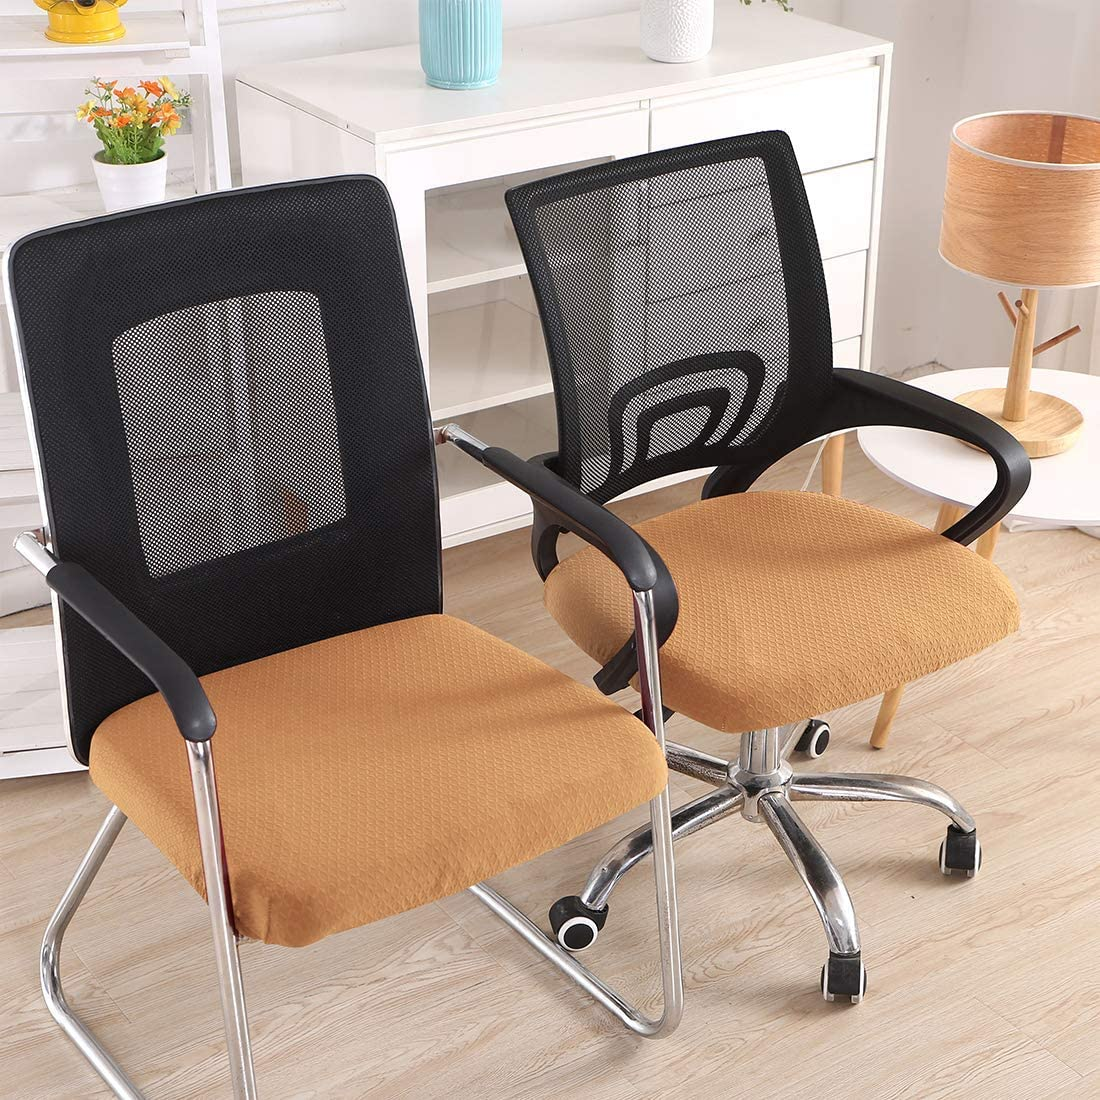 Camel Set of 2 Jacquard Desk Chair Seat Cushion Protectors Chair Slipcovers smiry Stretch Chair Seat Covers for Office Computer Chair